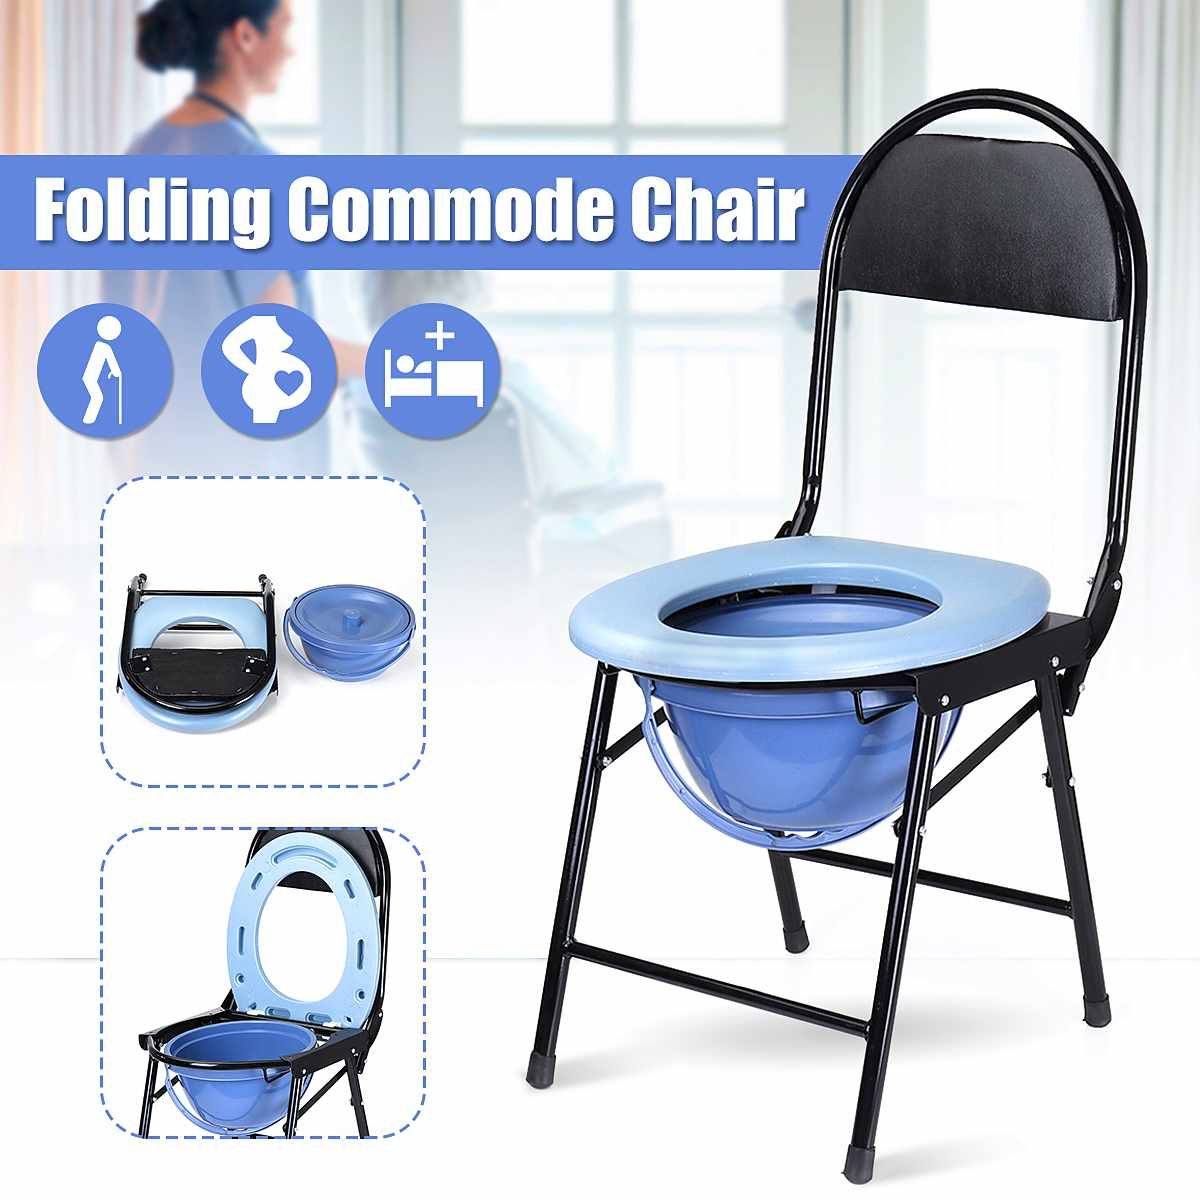 Portable Folding Bedside Bathroom Potty Toilet Convenient Commode Seat Shower Chair No Slip Feet For Elderly Disabled People In 2020 Shower Chair Potty Toilet Potty Chair